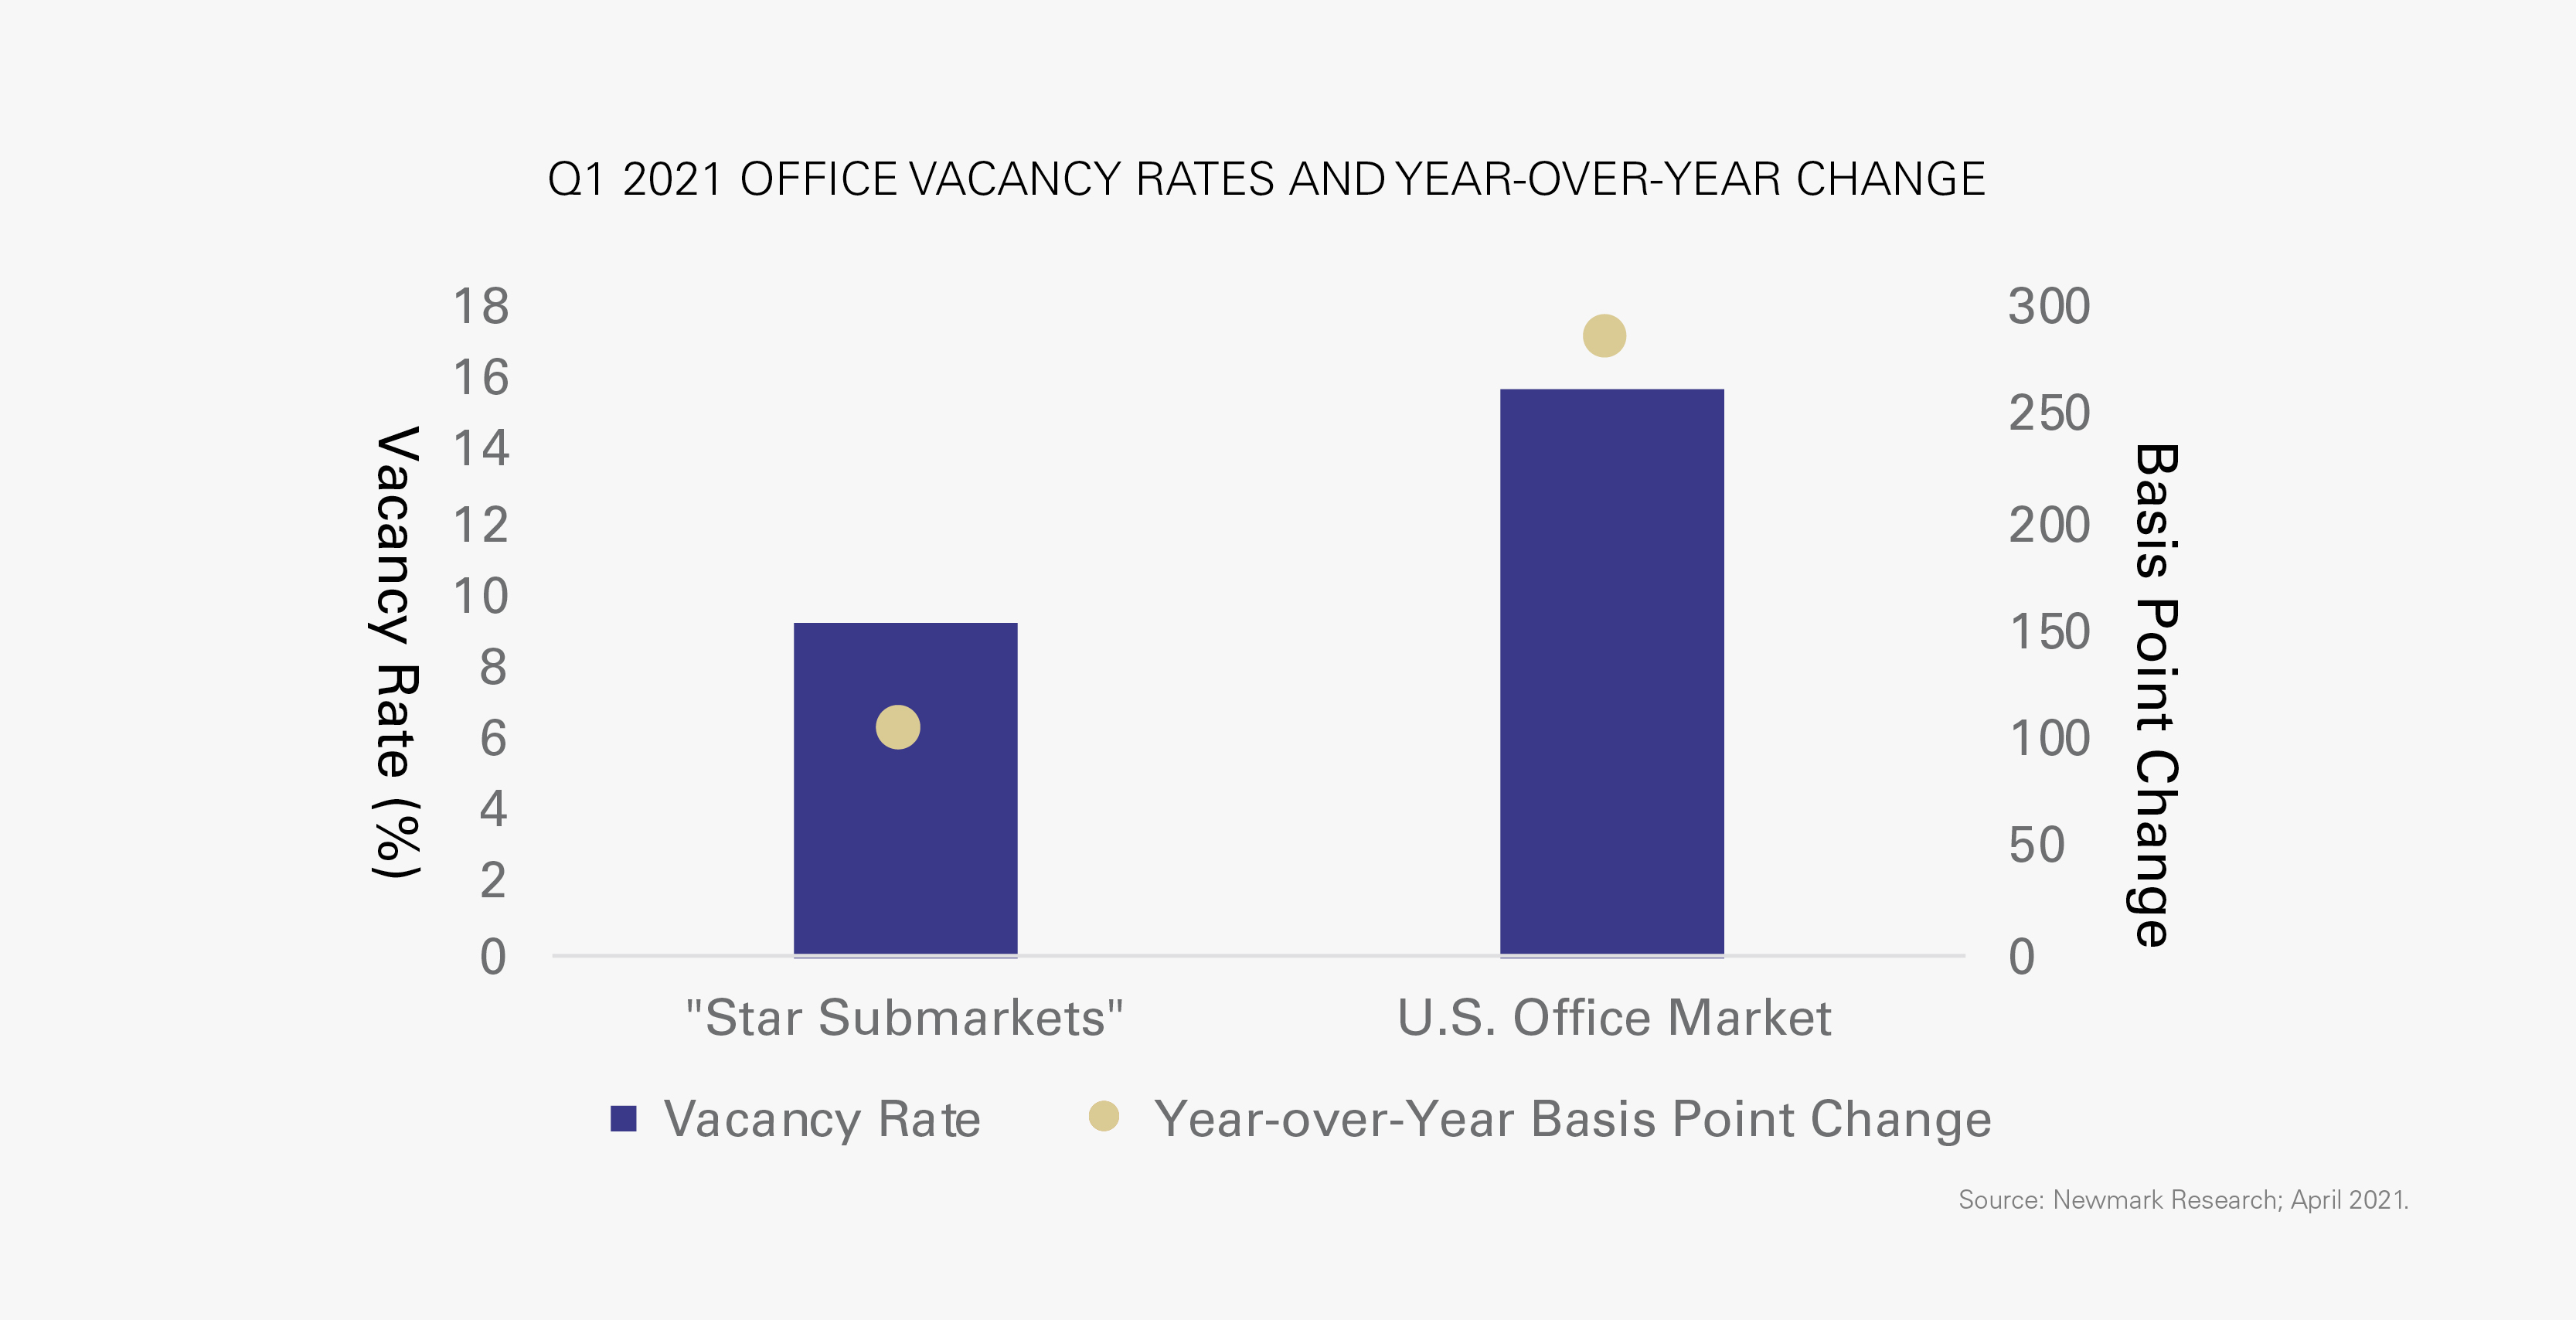 Q1 2021 OFFICE VACANCY RATES AND YEAR-OVER-YEAR CHANGE